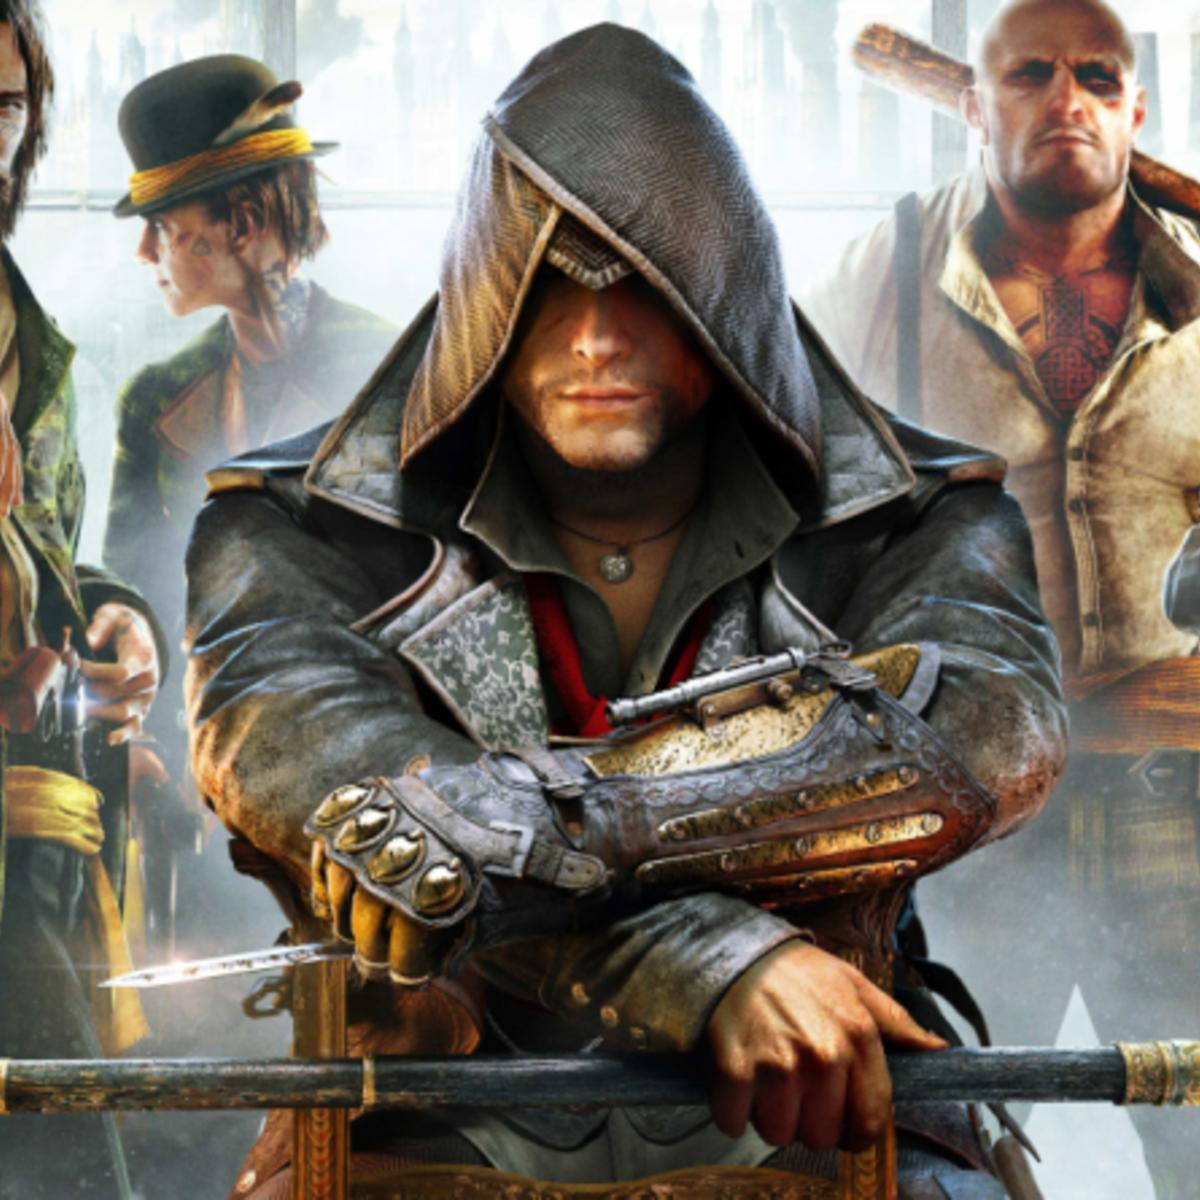 AssassinsCreedSyndicate_BoxArt_2_0.jpg